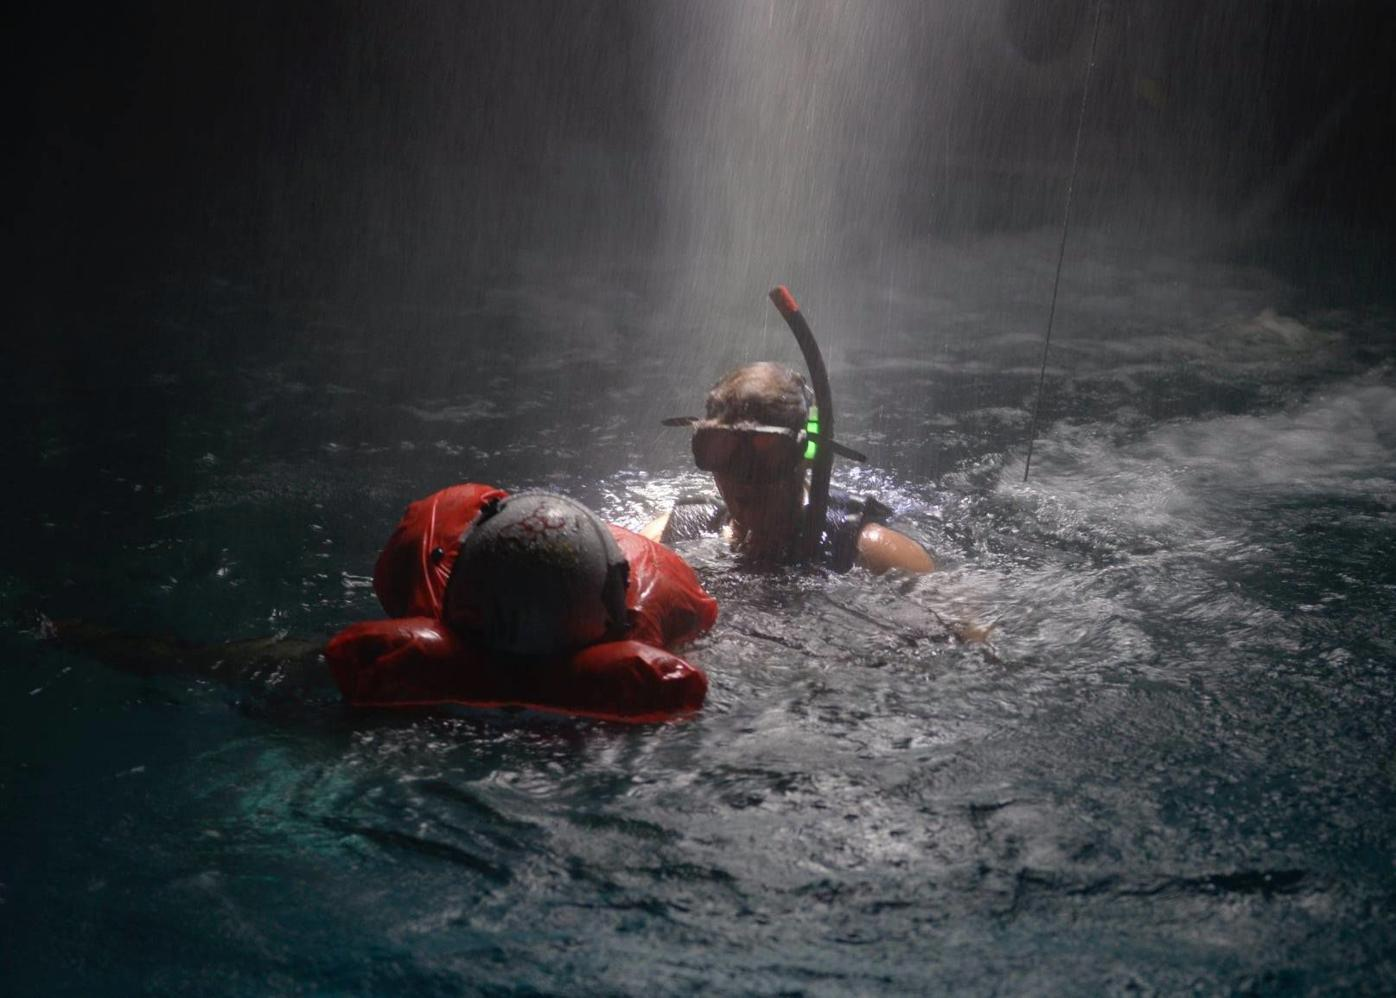 'So others may live': Rescue swimmer training simulates nighttime conditions